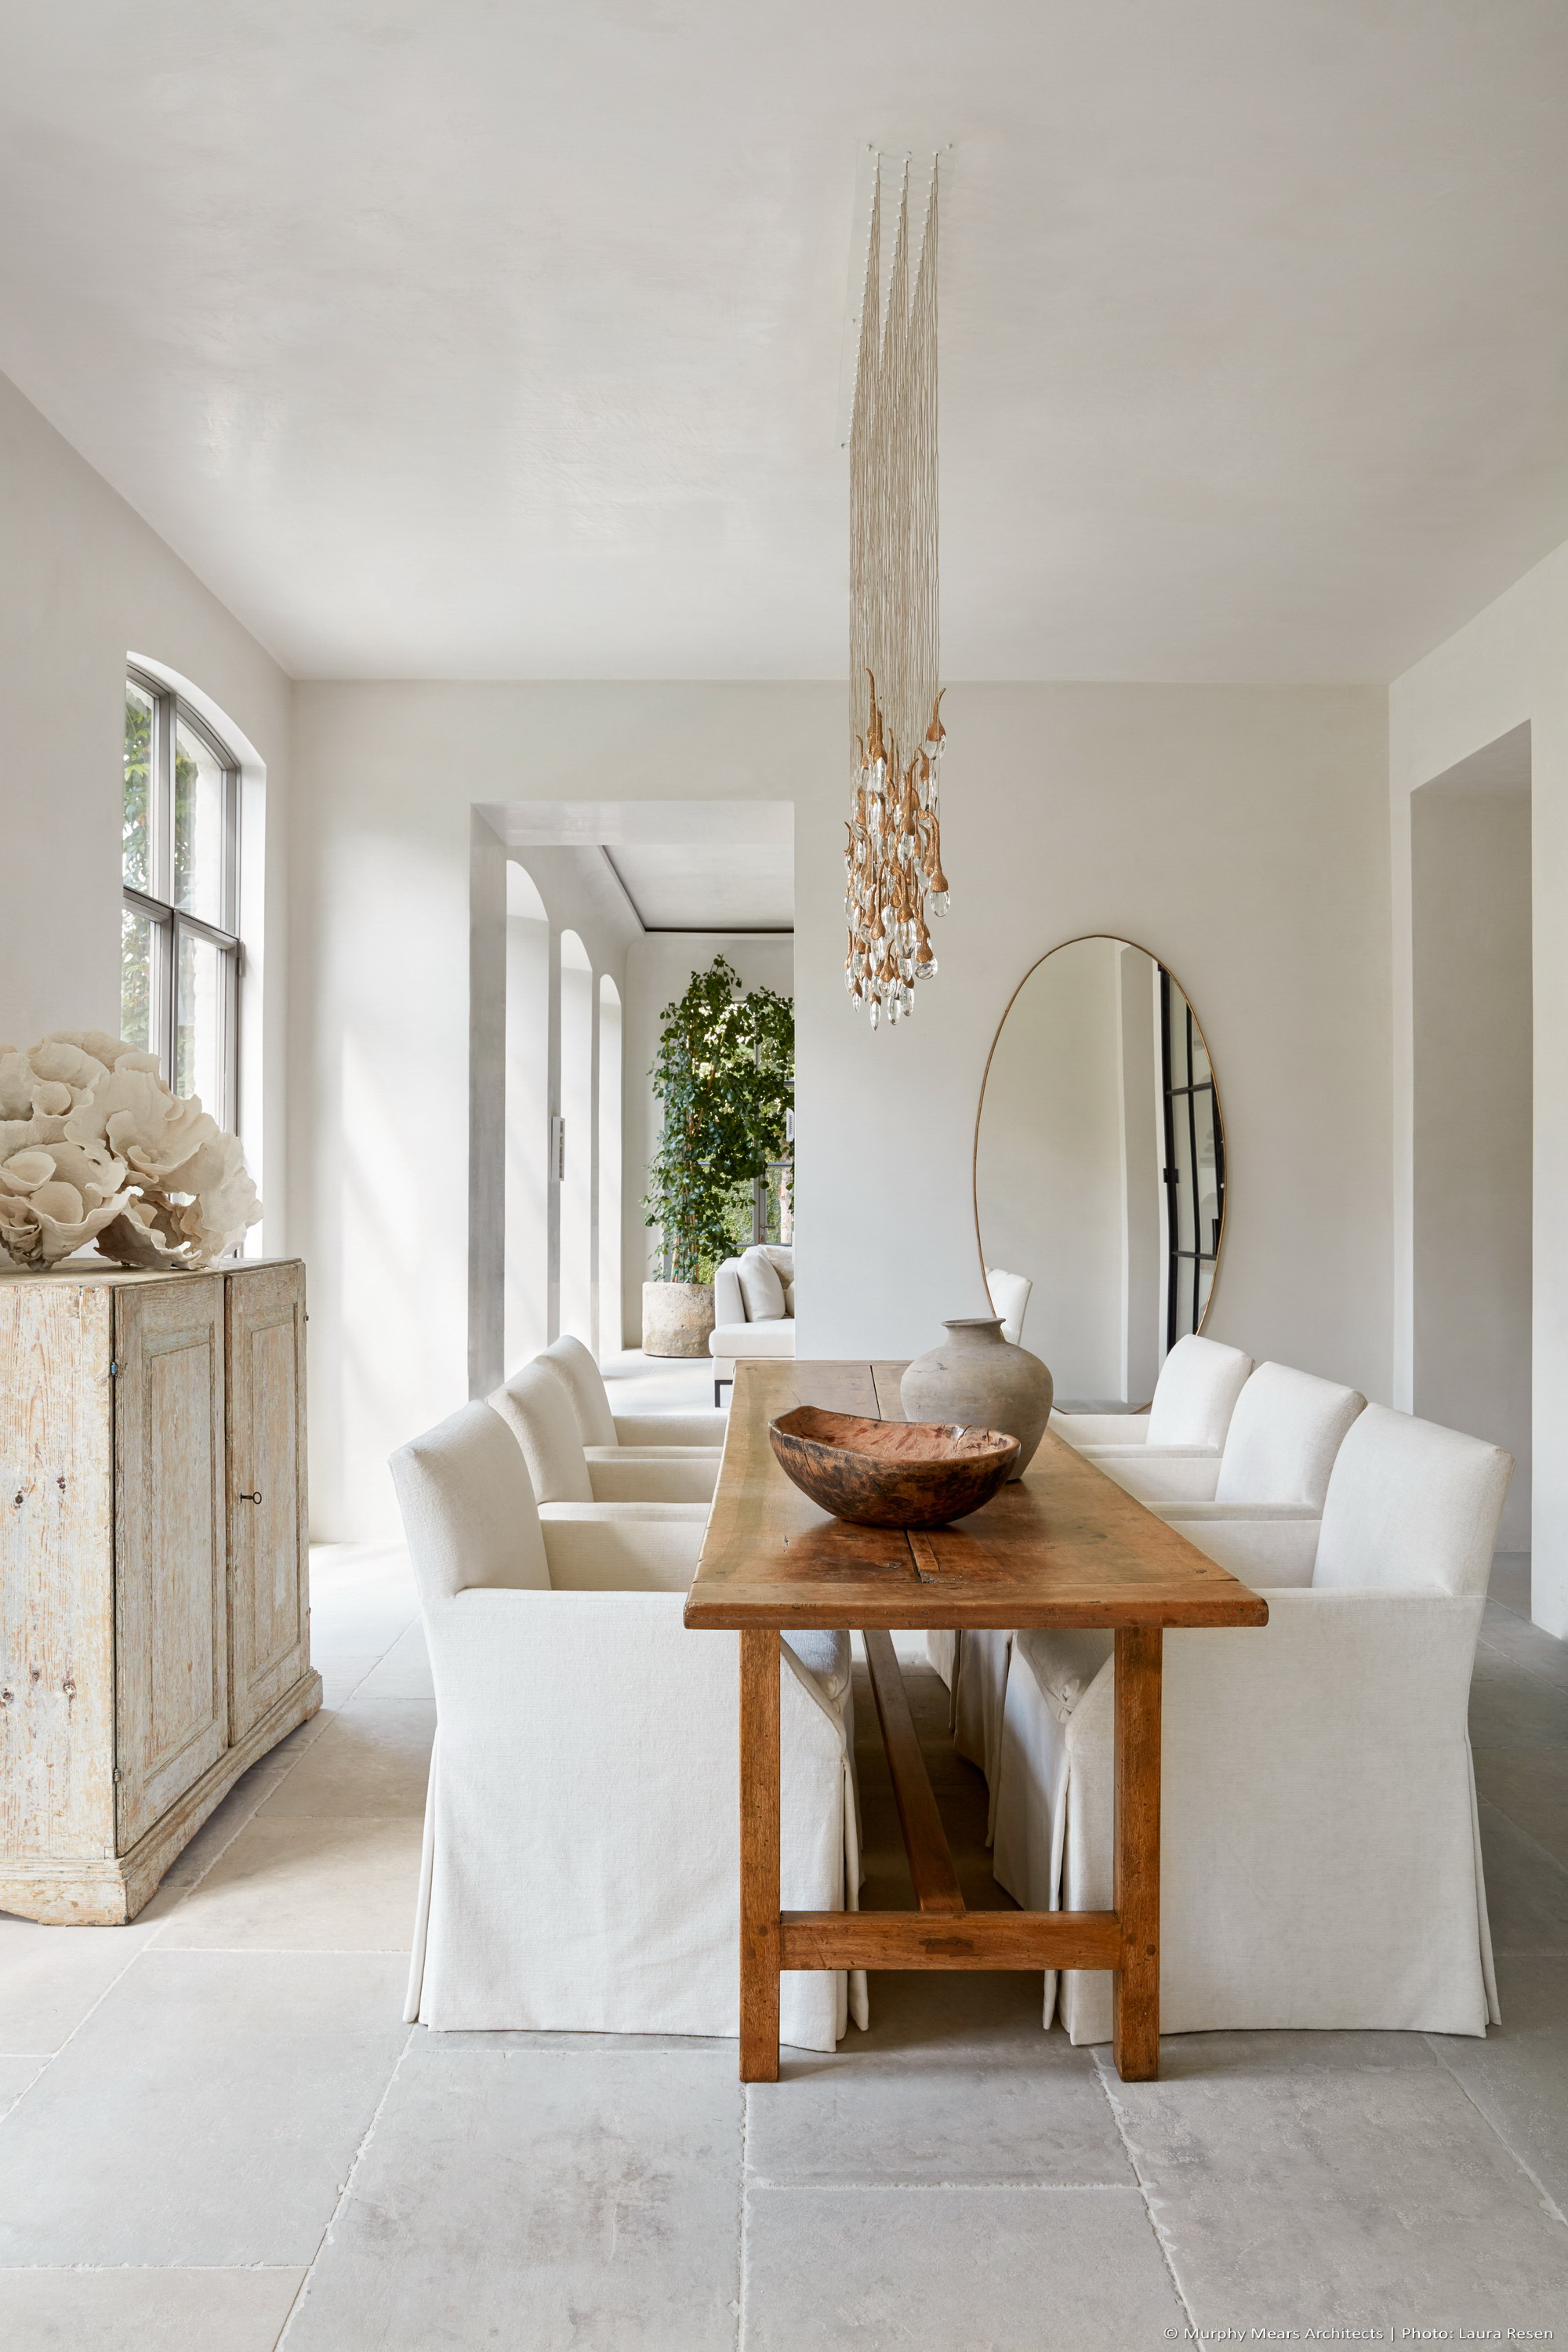 Centrally located dining room french limestone floors and plaster walls and ceiling.